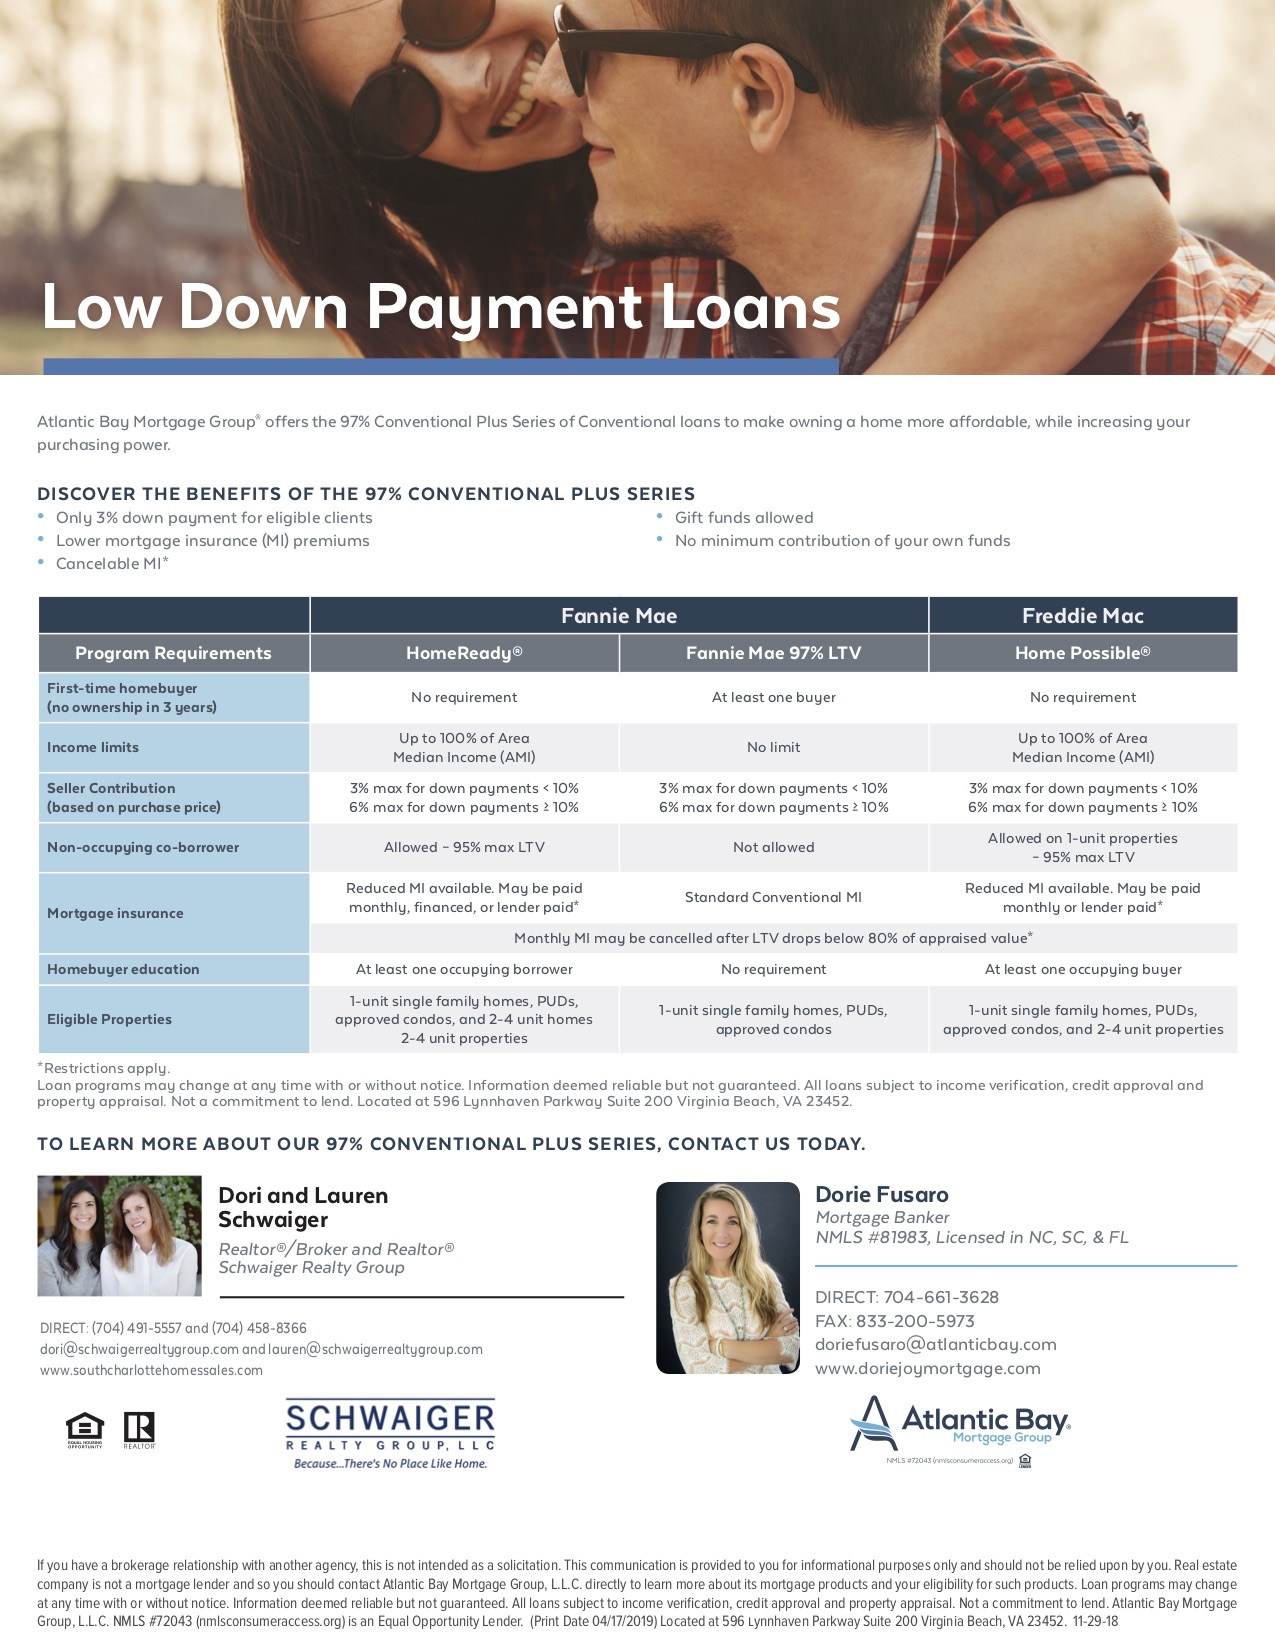 Low Down Payment Loans - Schwaiger Realty Group - Atlantic Bay Mortgage